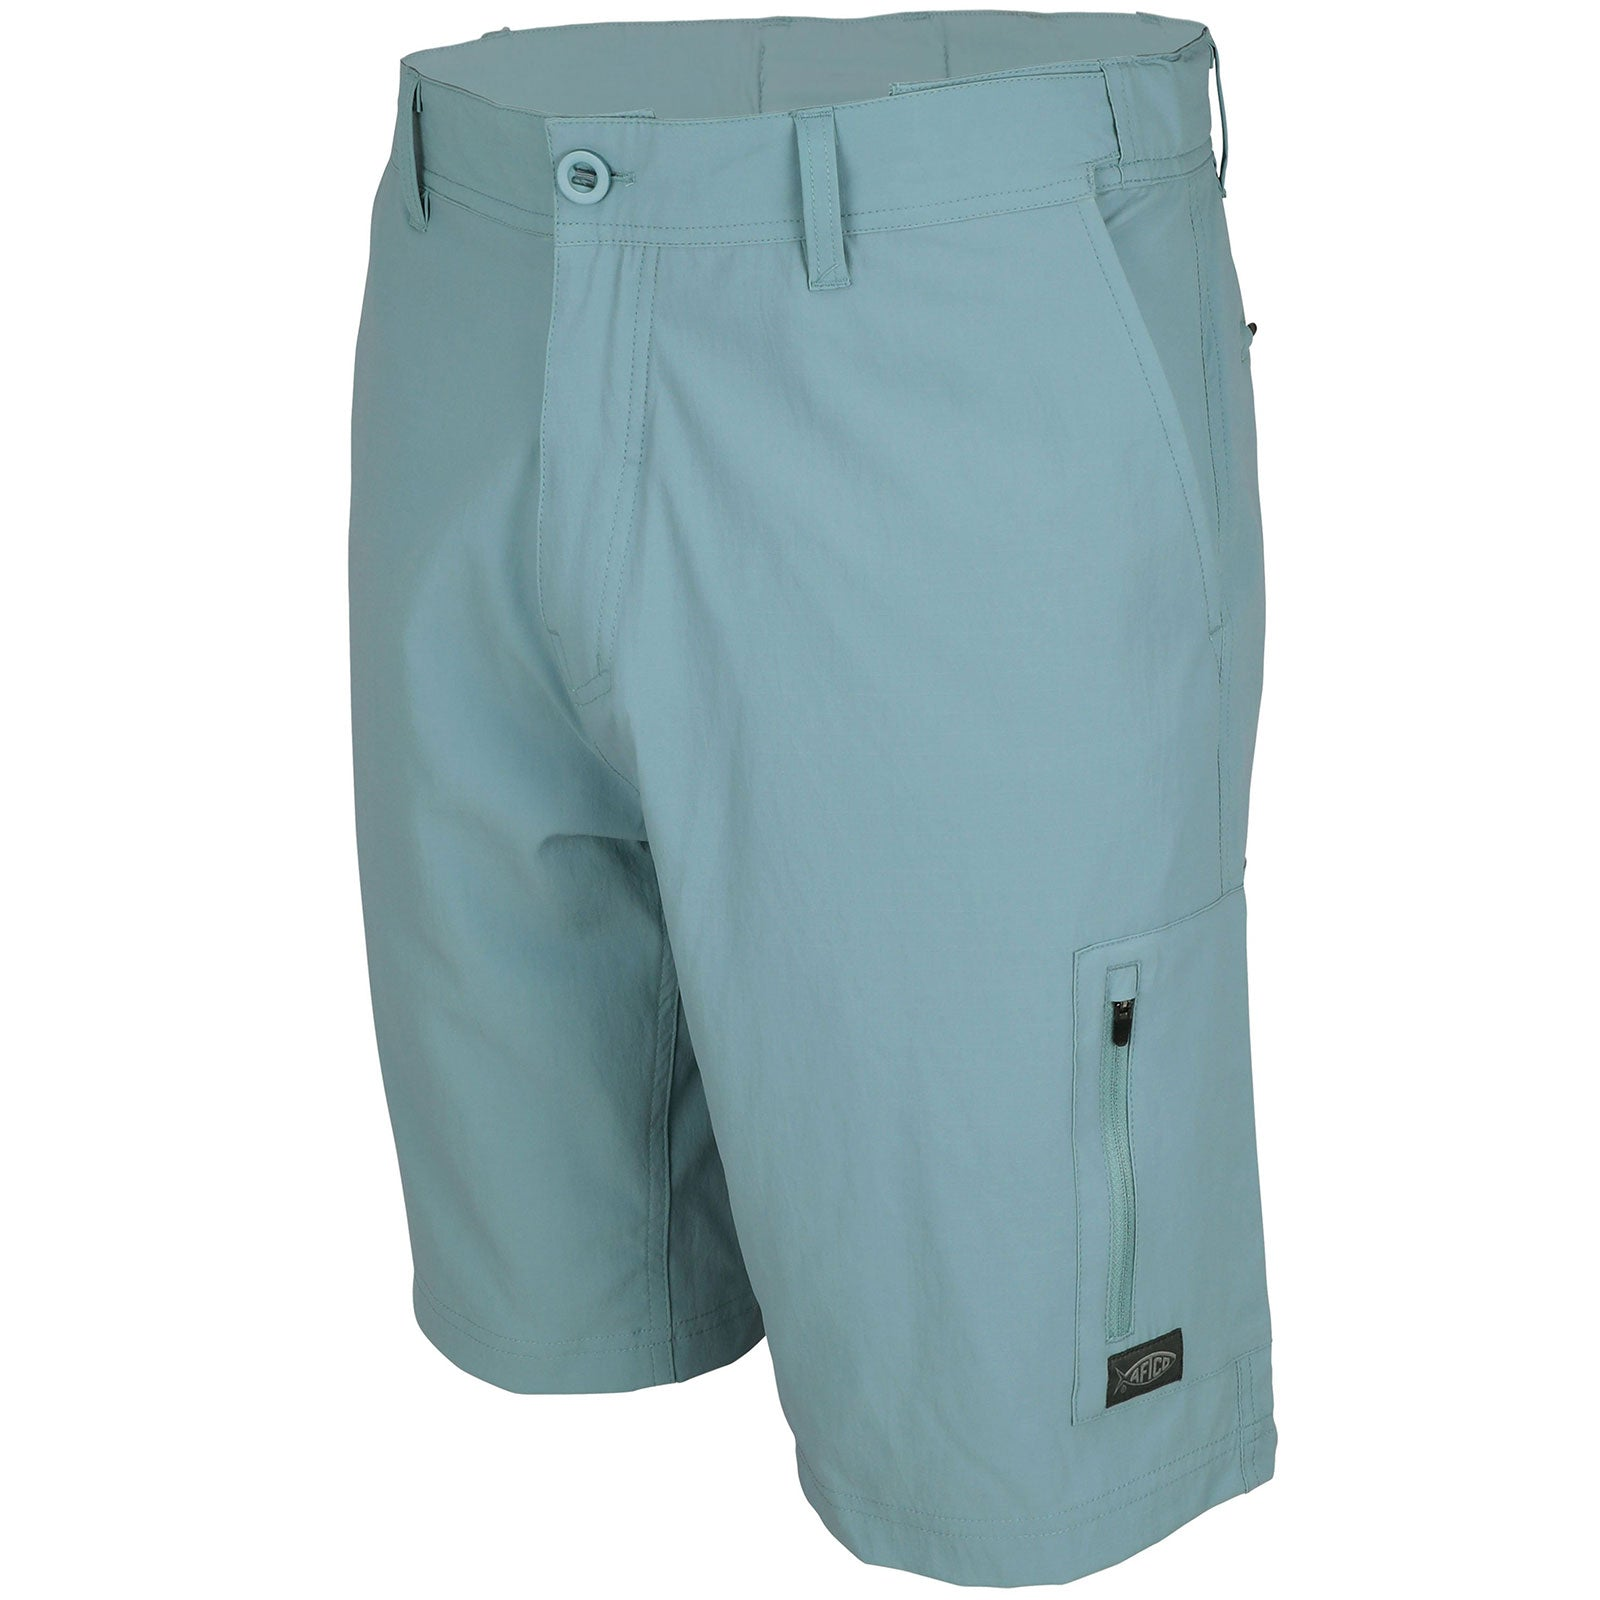 Rescue Recycled Cargo Fishing Shorts made of Recycled Nets